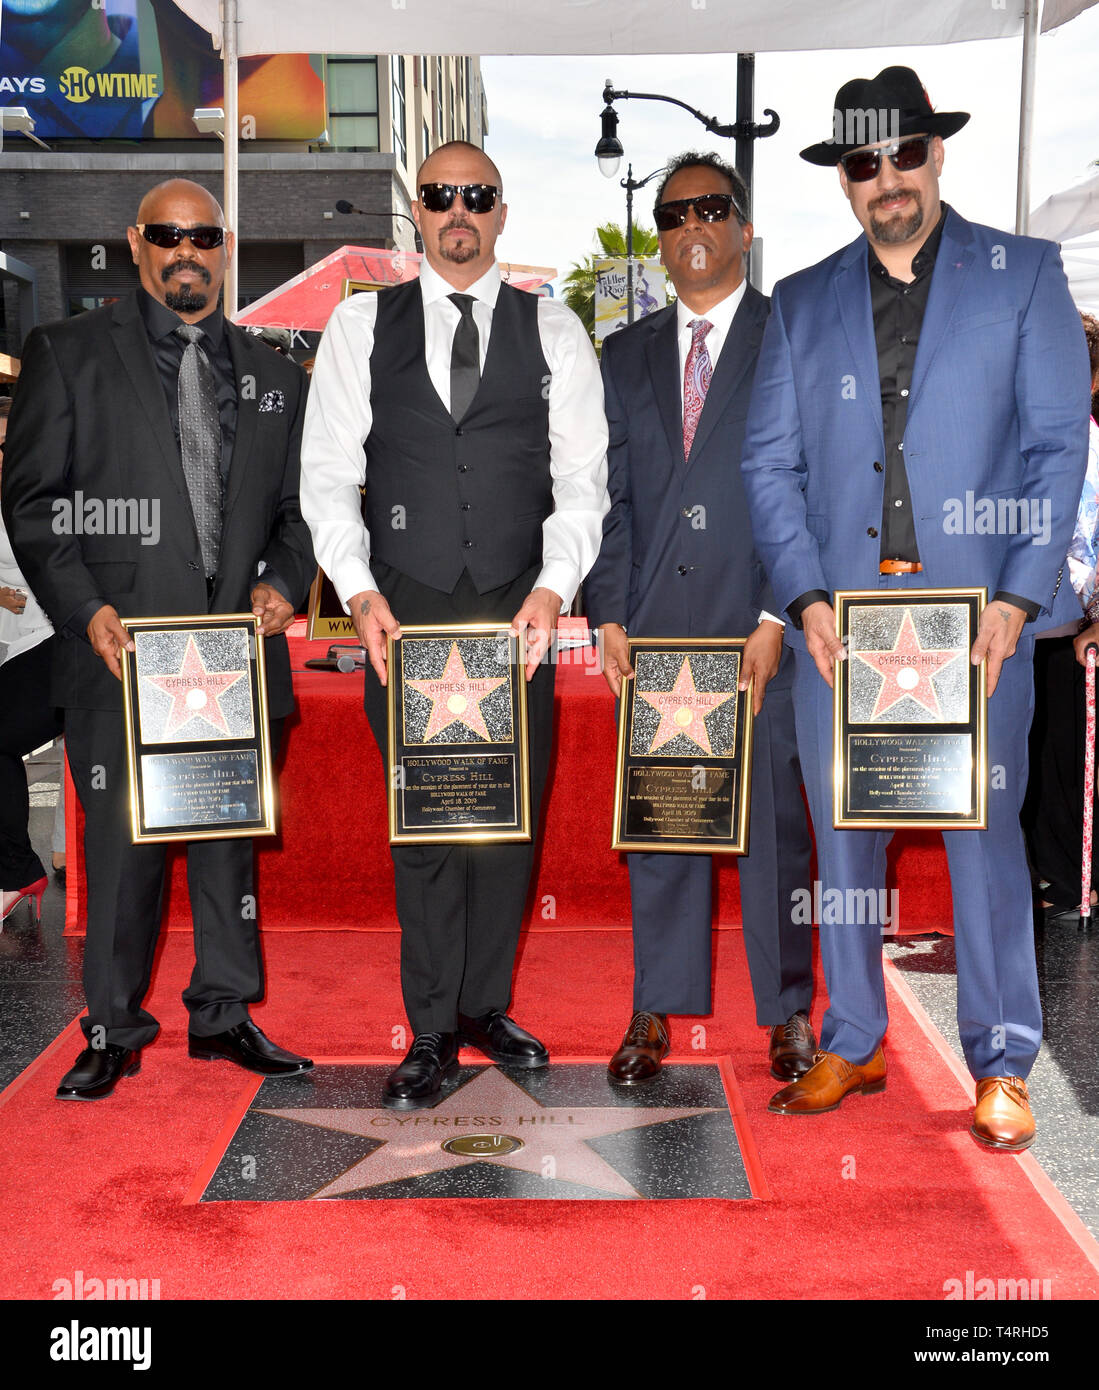 Los Angeles, California, EEUU. 18 abr, 2019. Cypress Hill, Sen Dog, DJ Muggs, Eric Bobo Correa & B Real en el Paseo de la Fama de Hollywood Star ceremonia en honor a grupo de hip-hop Cypress Hill. Fotos: Paul Smith/Featureflash Crédito: Paul Smith/Alamy Live News Imagen De Stock